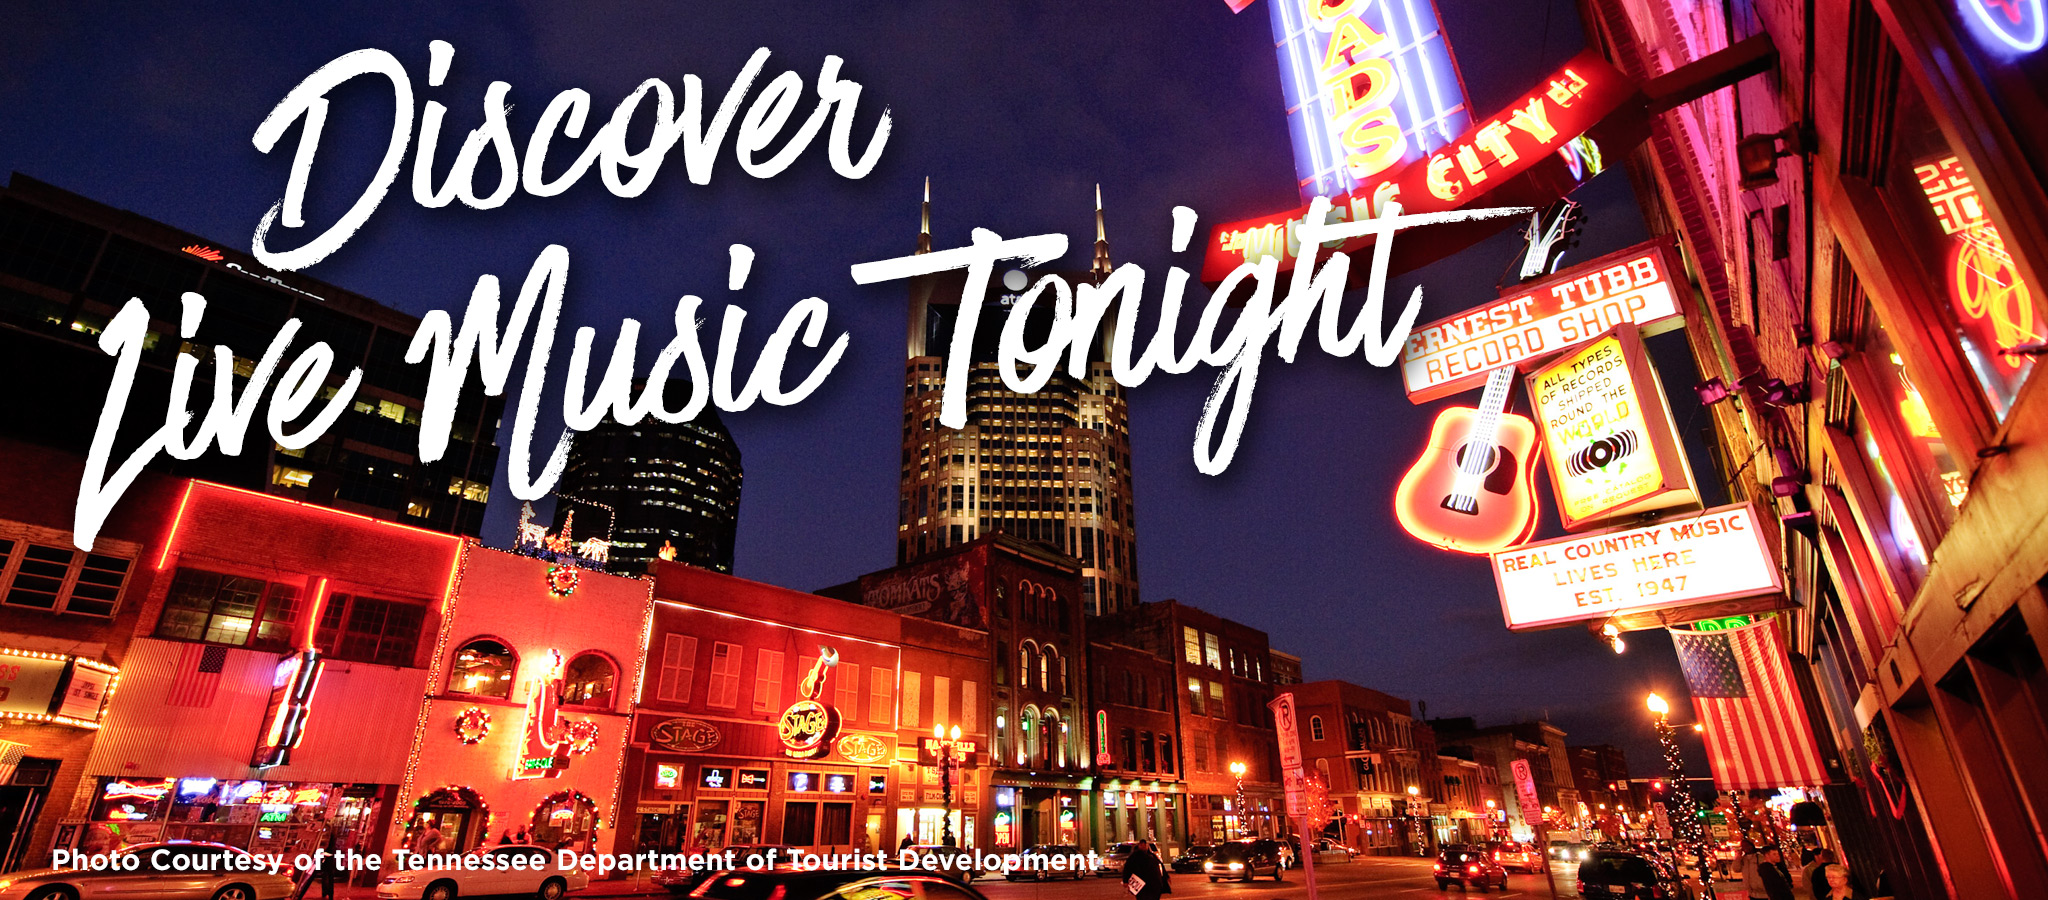 Discover Live Music Tonight!